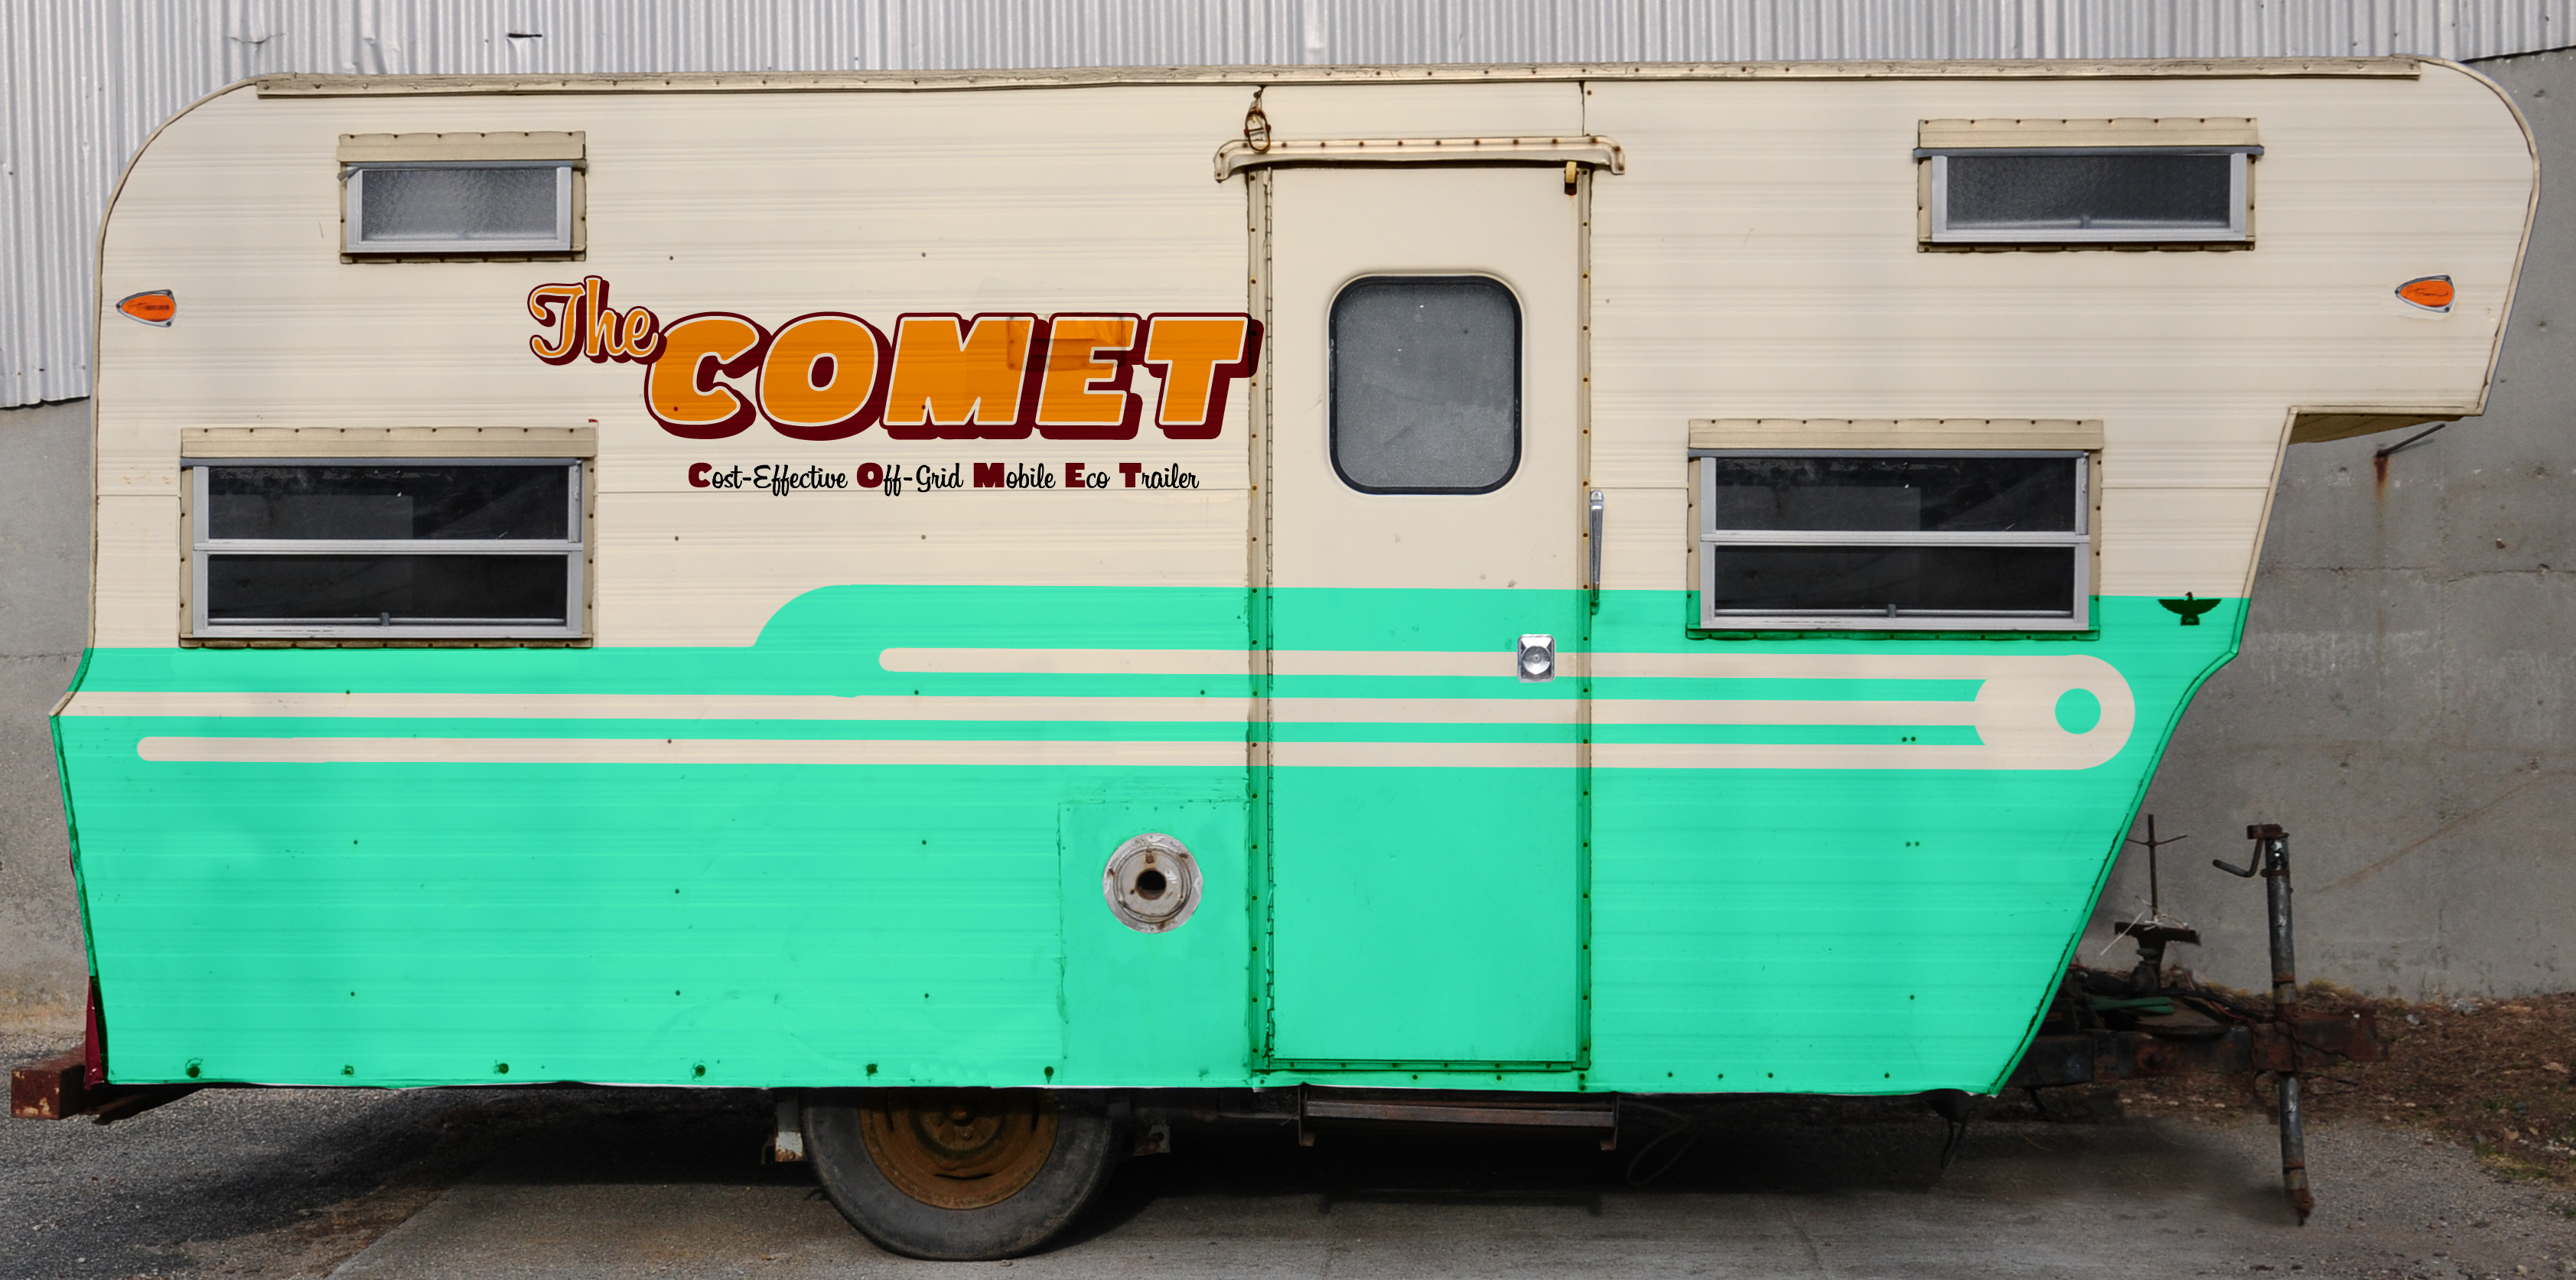 Mariah Pastell The Comet Camper Page 5